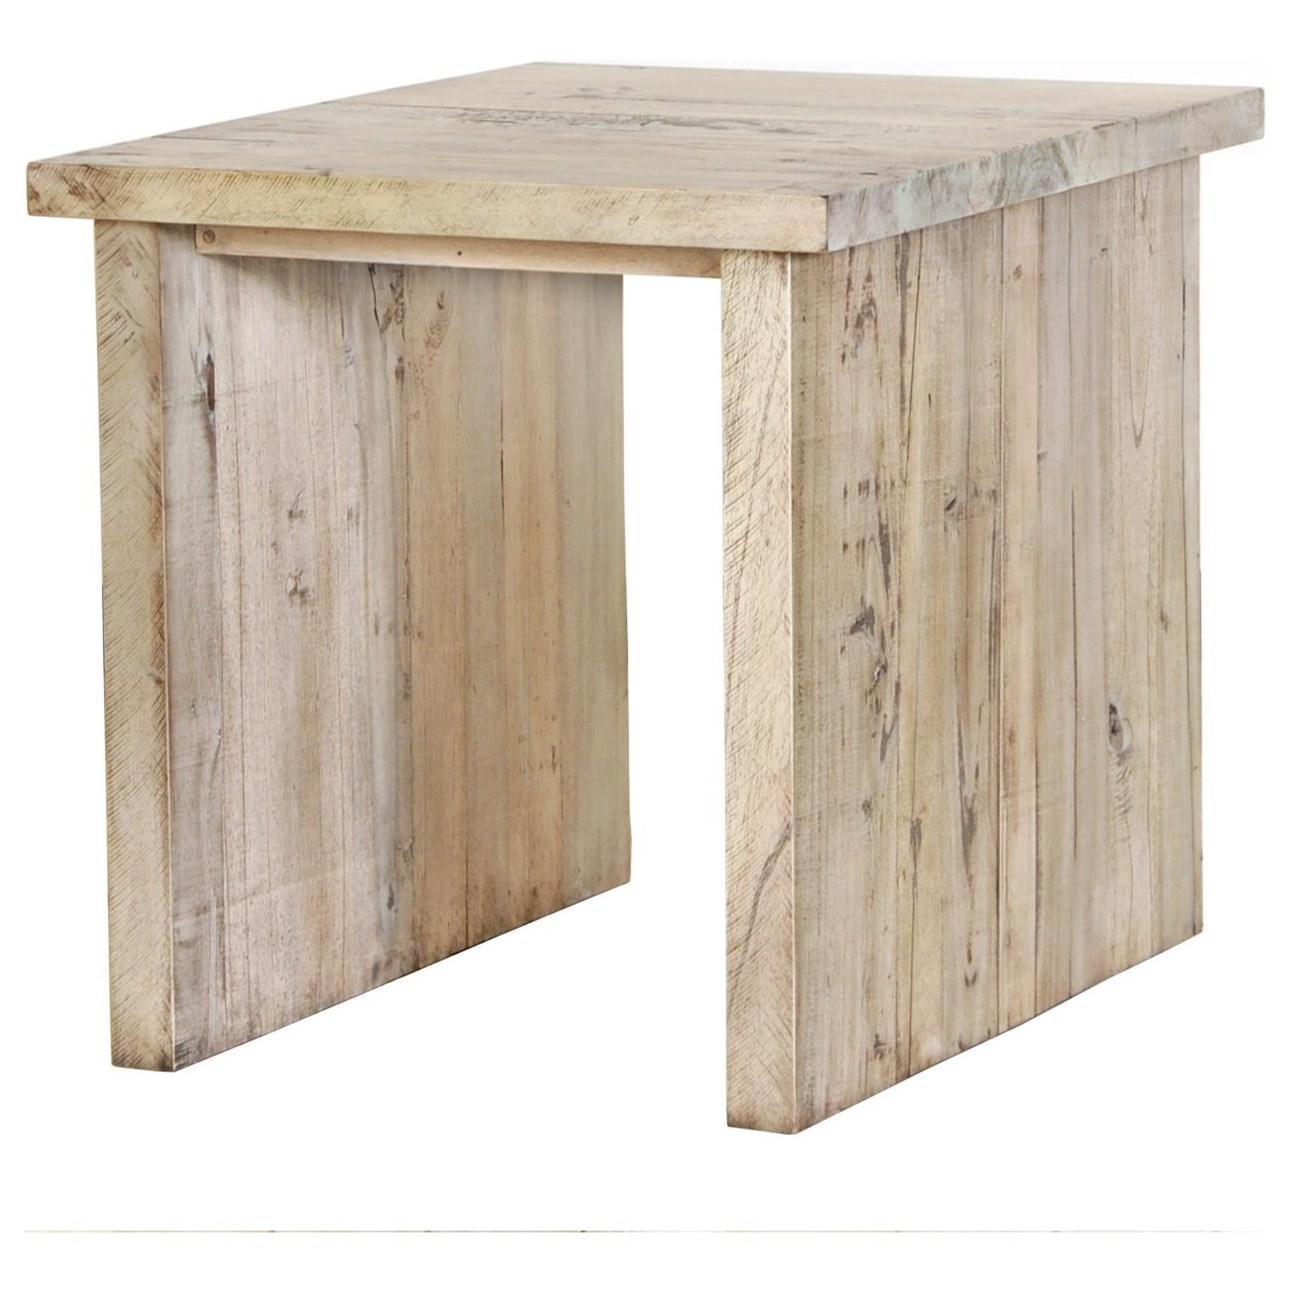 Renewal by Napa End Table by Napa Furniture Designs at Red Knot